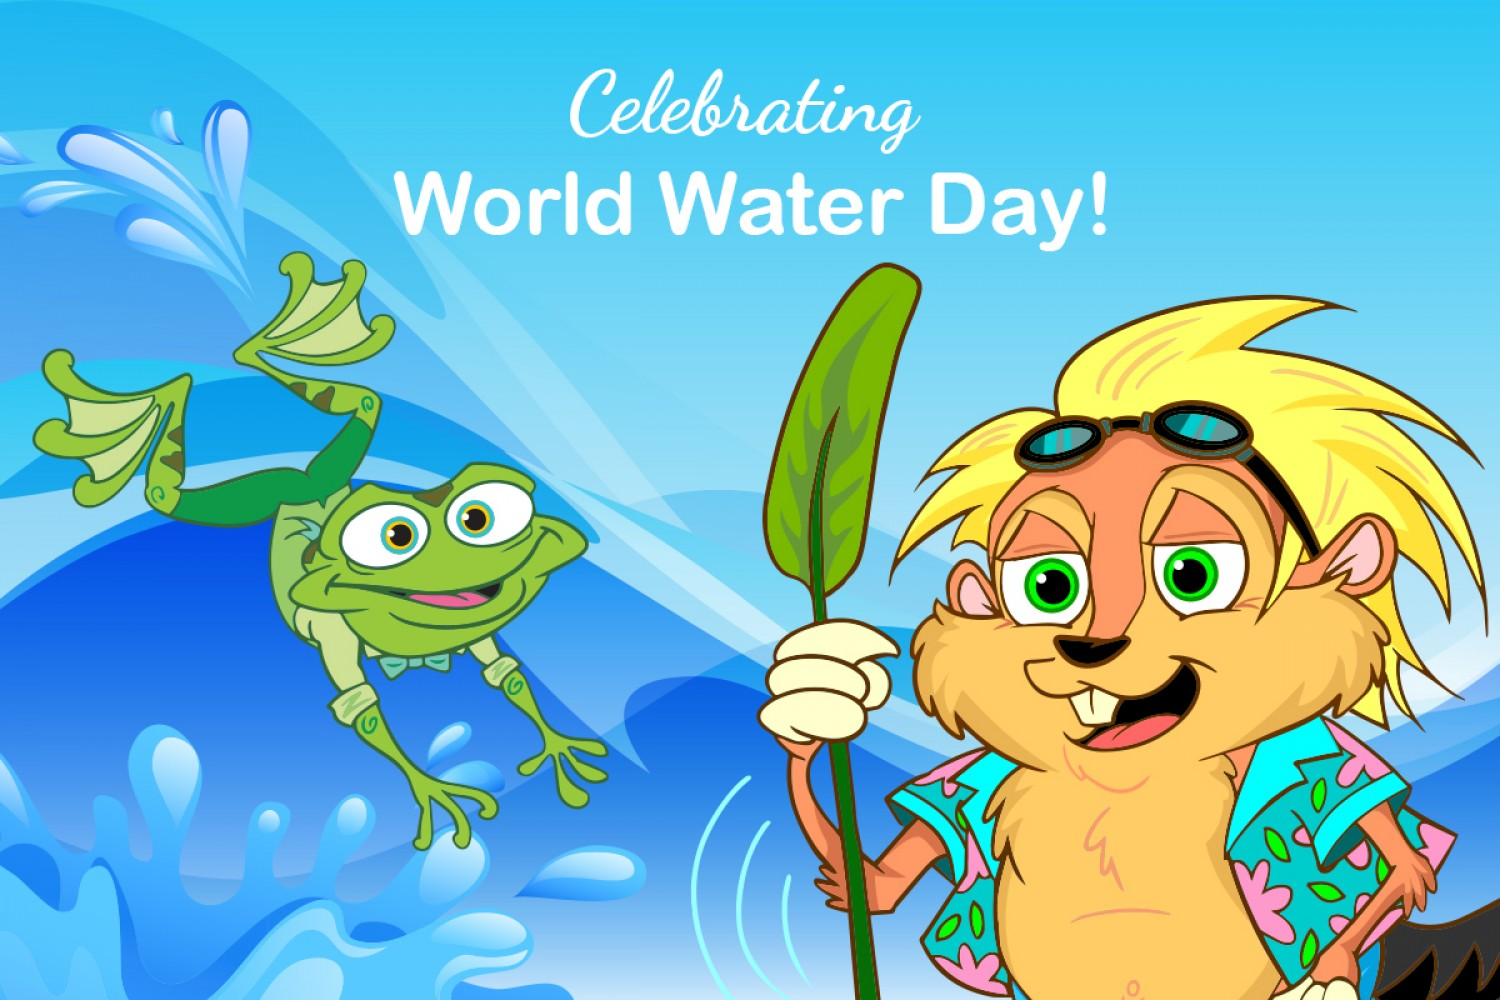 Water is super important. We need fresh water to drink and to live. World  Water Day is a good time to think about how we use water.